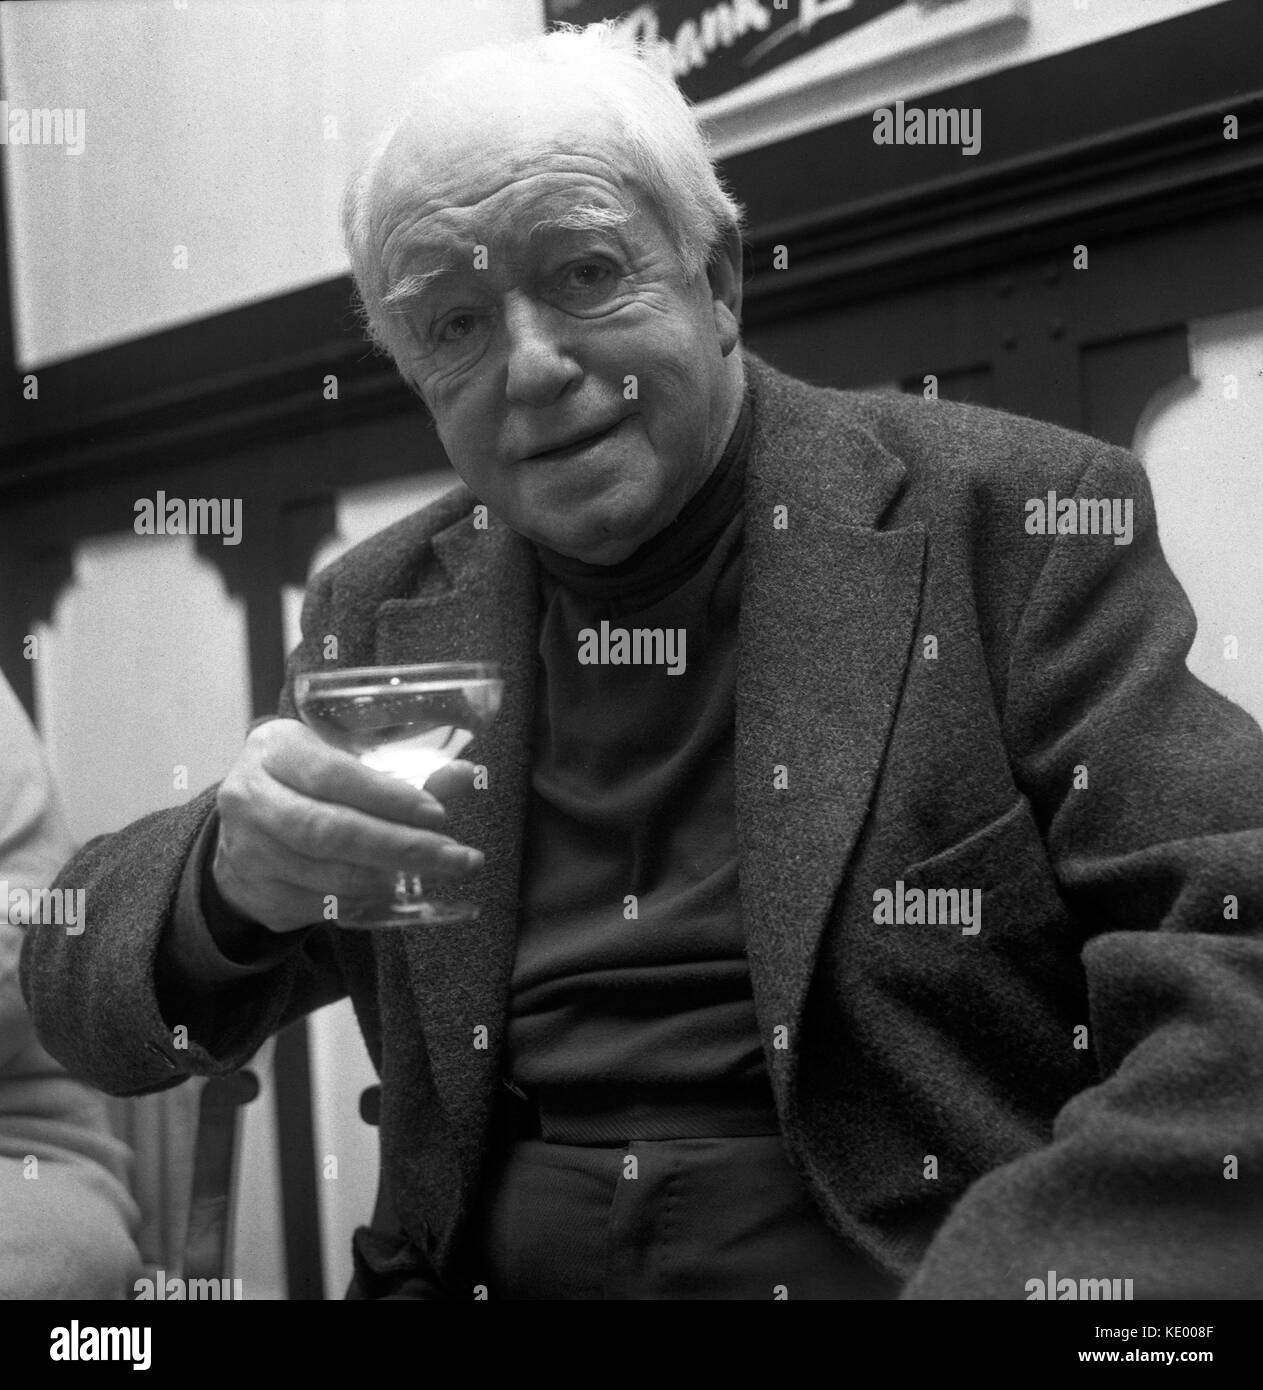 Actor Arnold Ridley - Private Godfrey of Dad's Army fame - toasts his 80th birthday (which is tomorrow) with - Stock Image